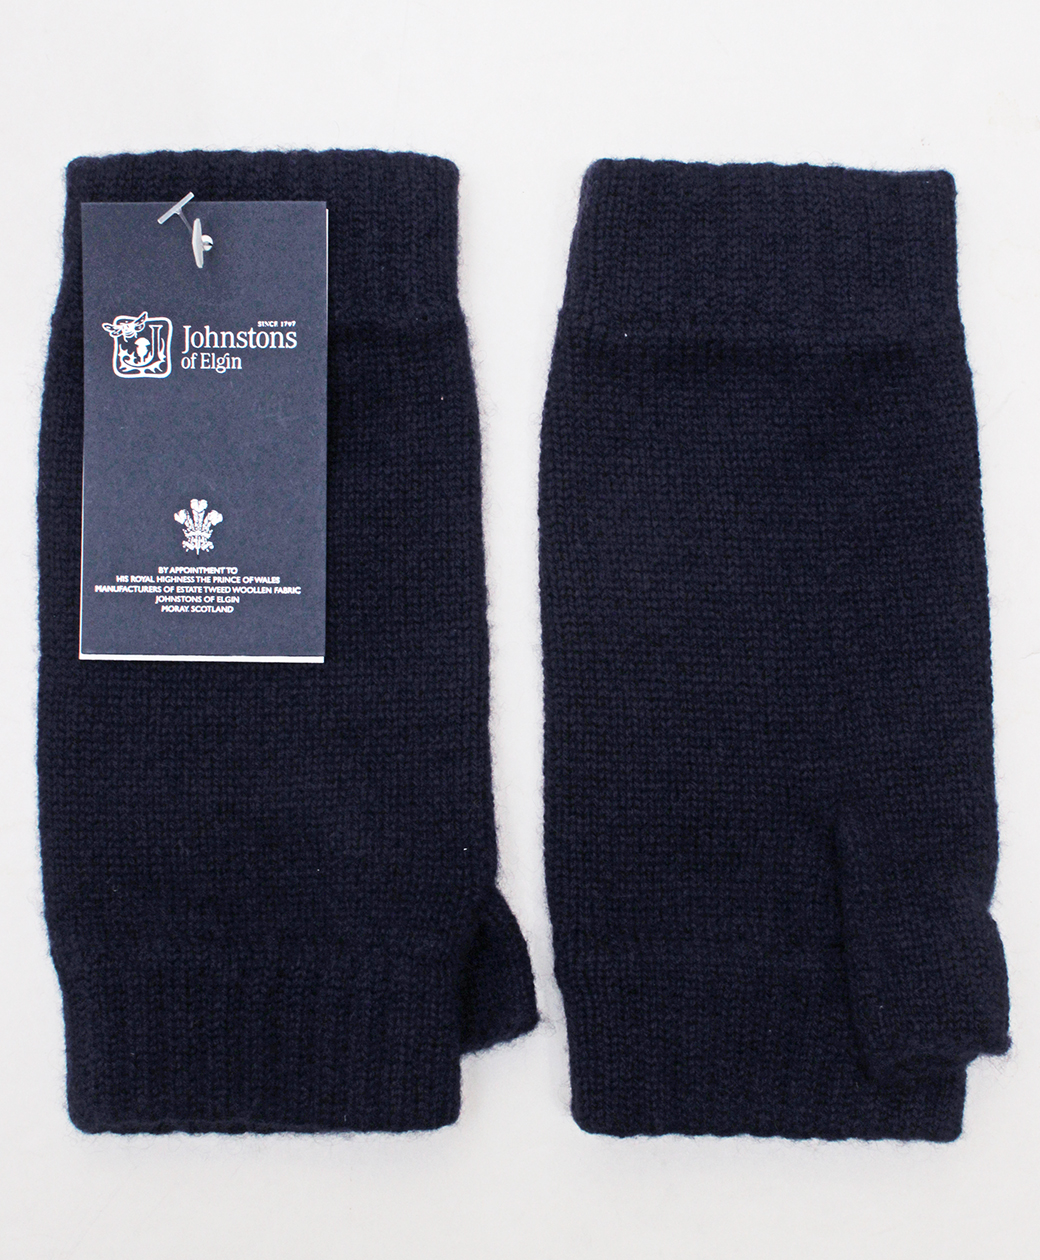 Johnstons of Elgin Wristwaemers(Navy)